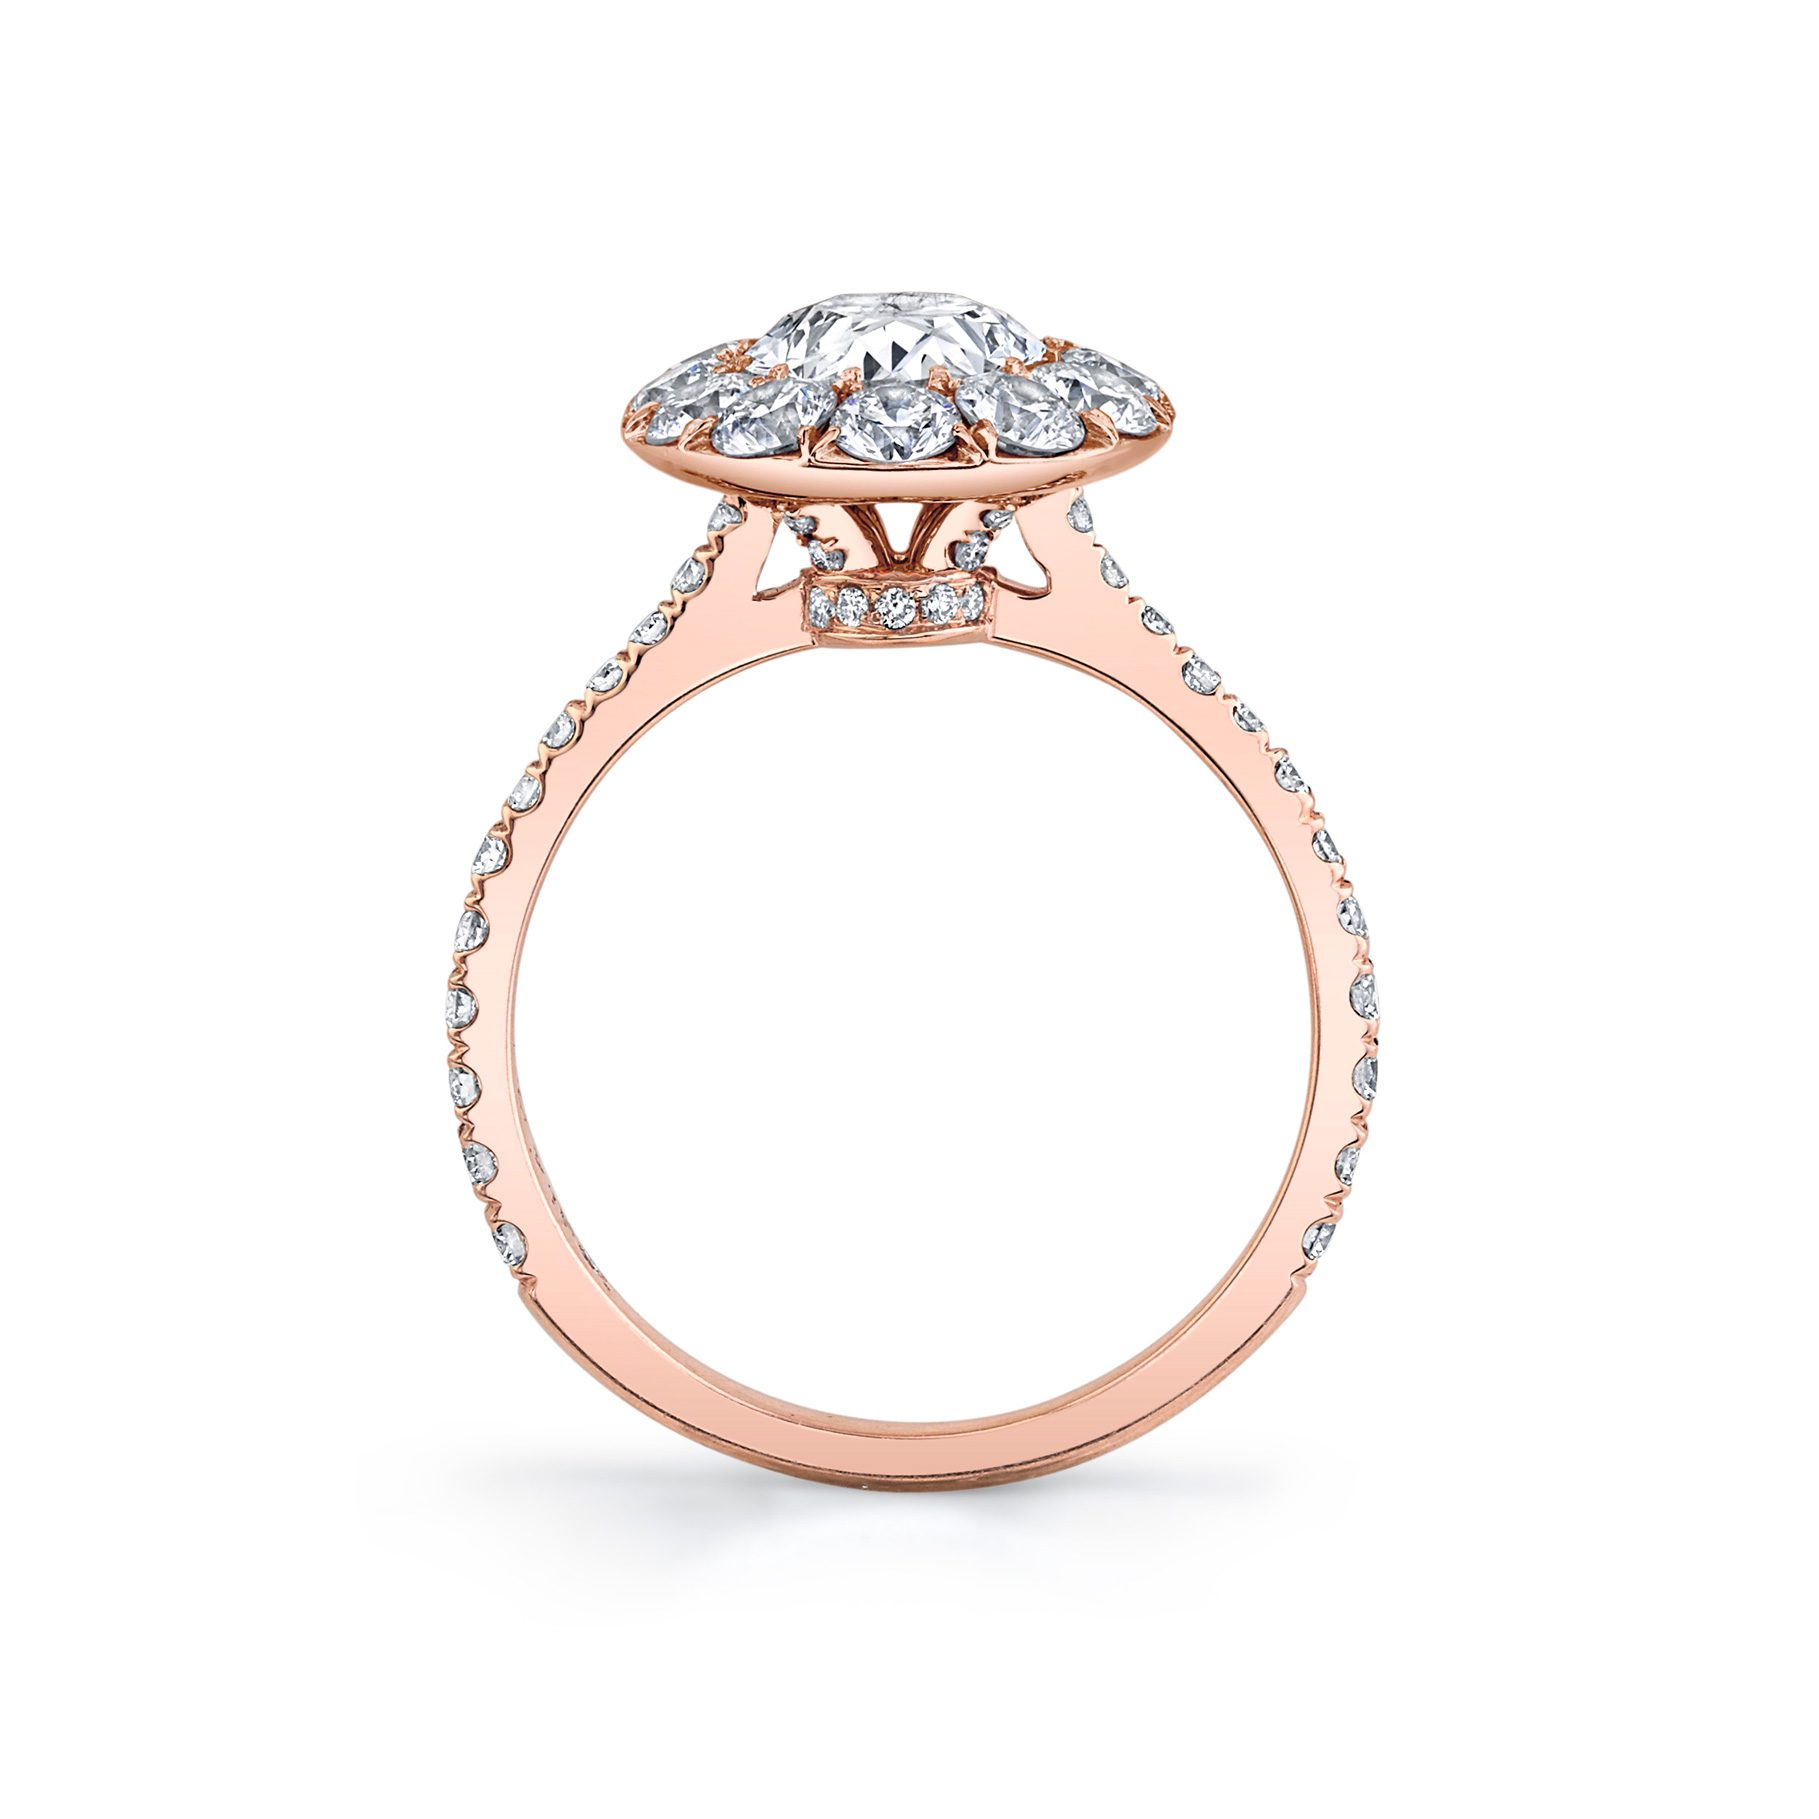 Eloise Oval Seamless Solitaire® Engagement Ring with diamond pavé in 18k Rose Gold Standing View by Oui by Jean Dousset